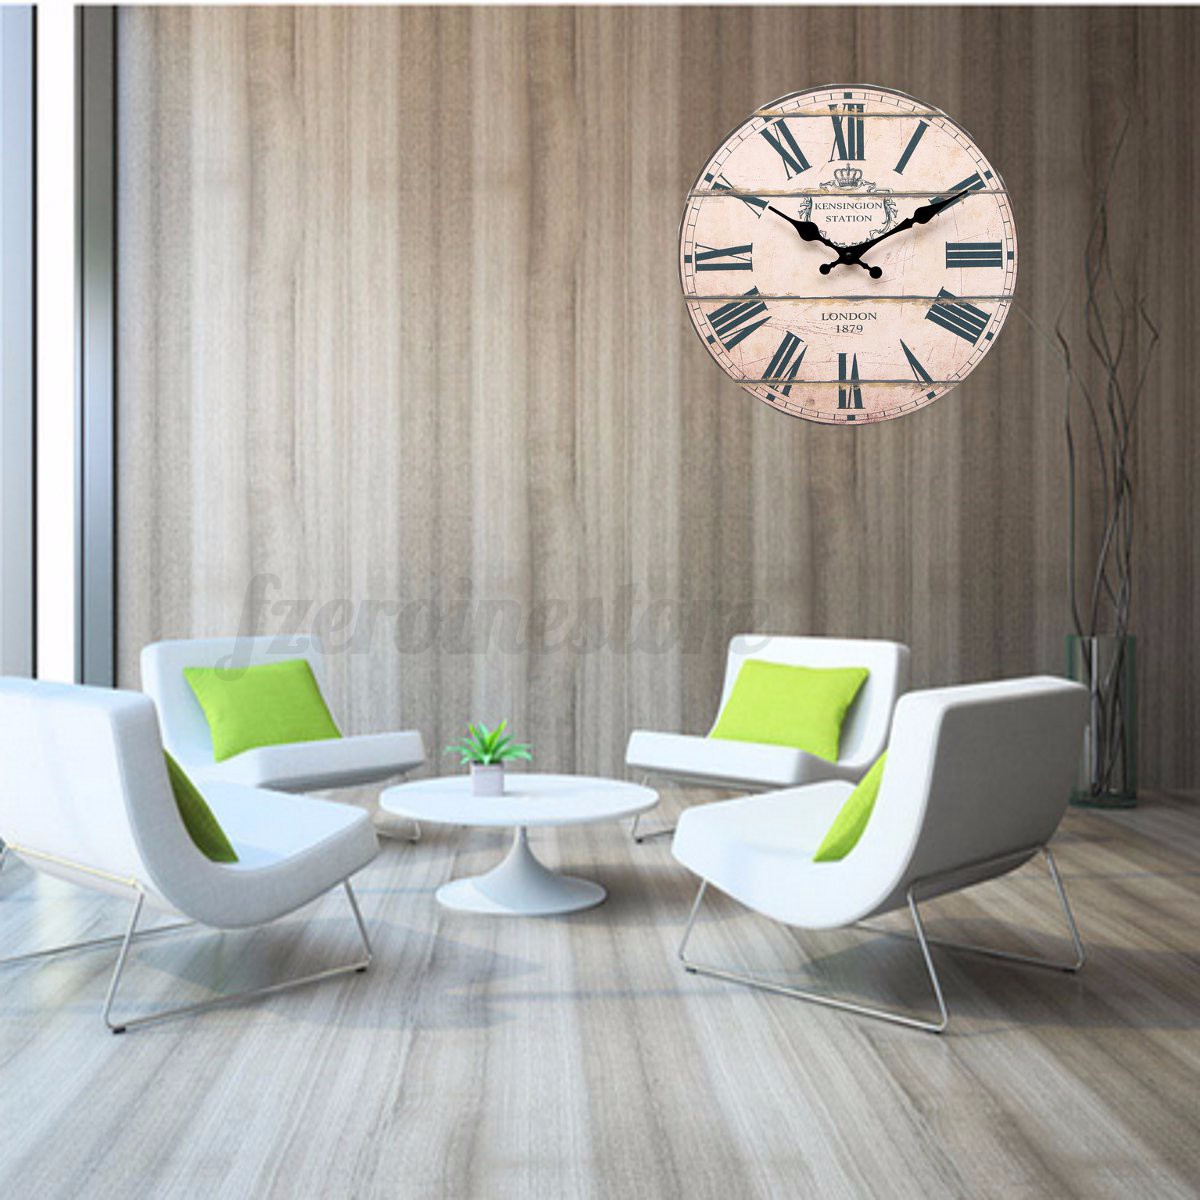 Large Wood Vintage Wall Clock Shabby Rural Antique Style For Home ...